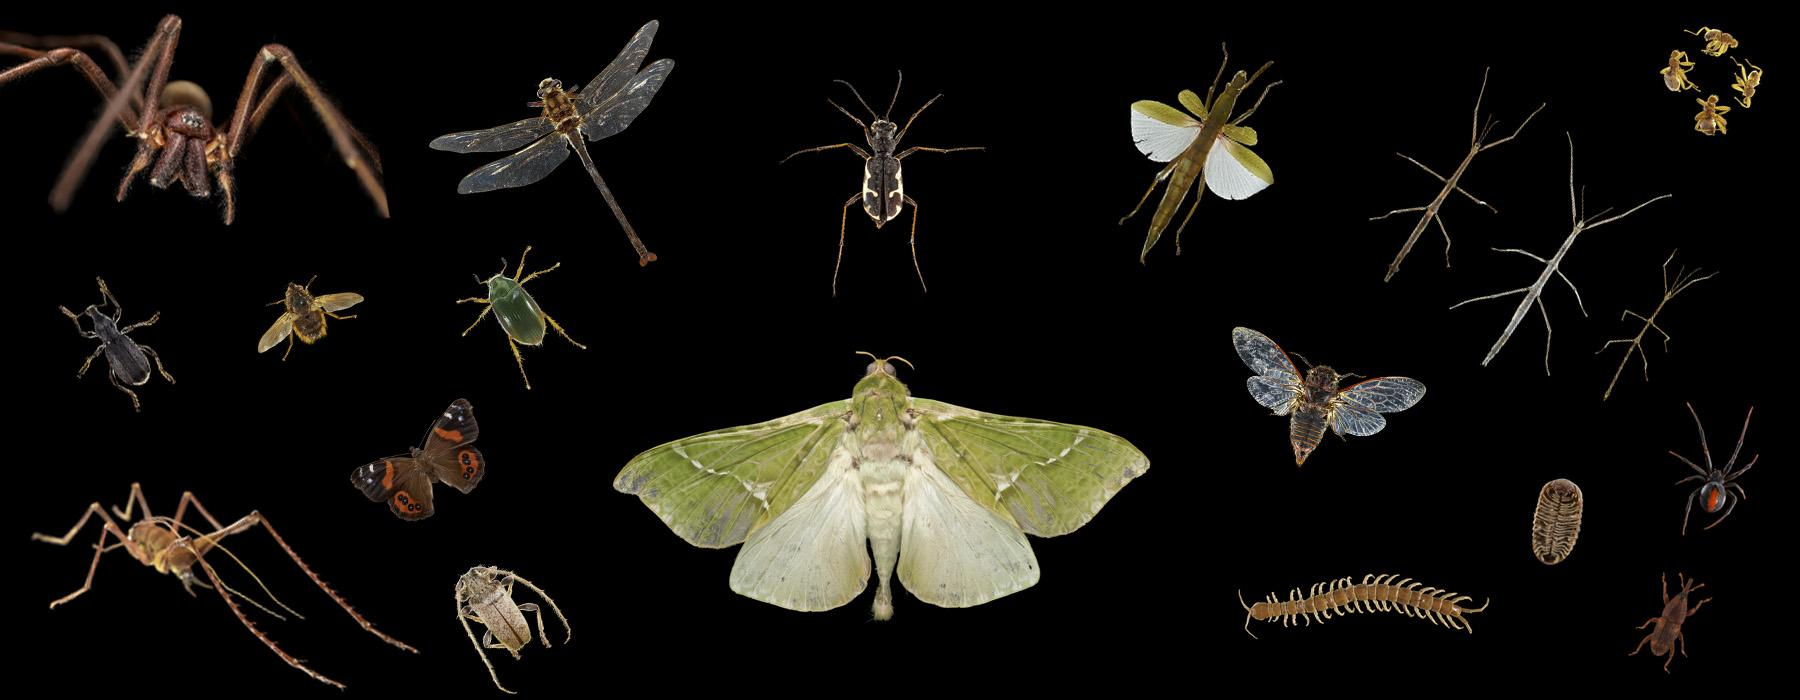 18 types of bugs and insects on a black background